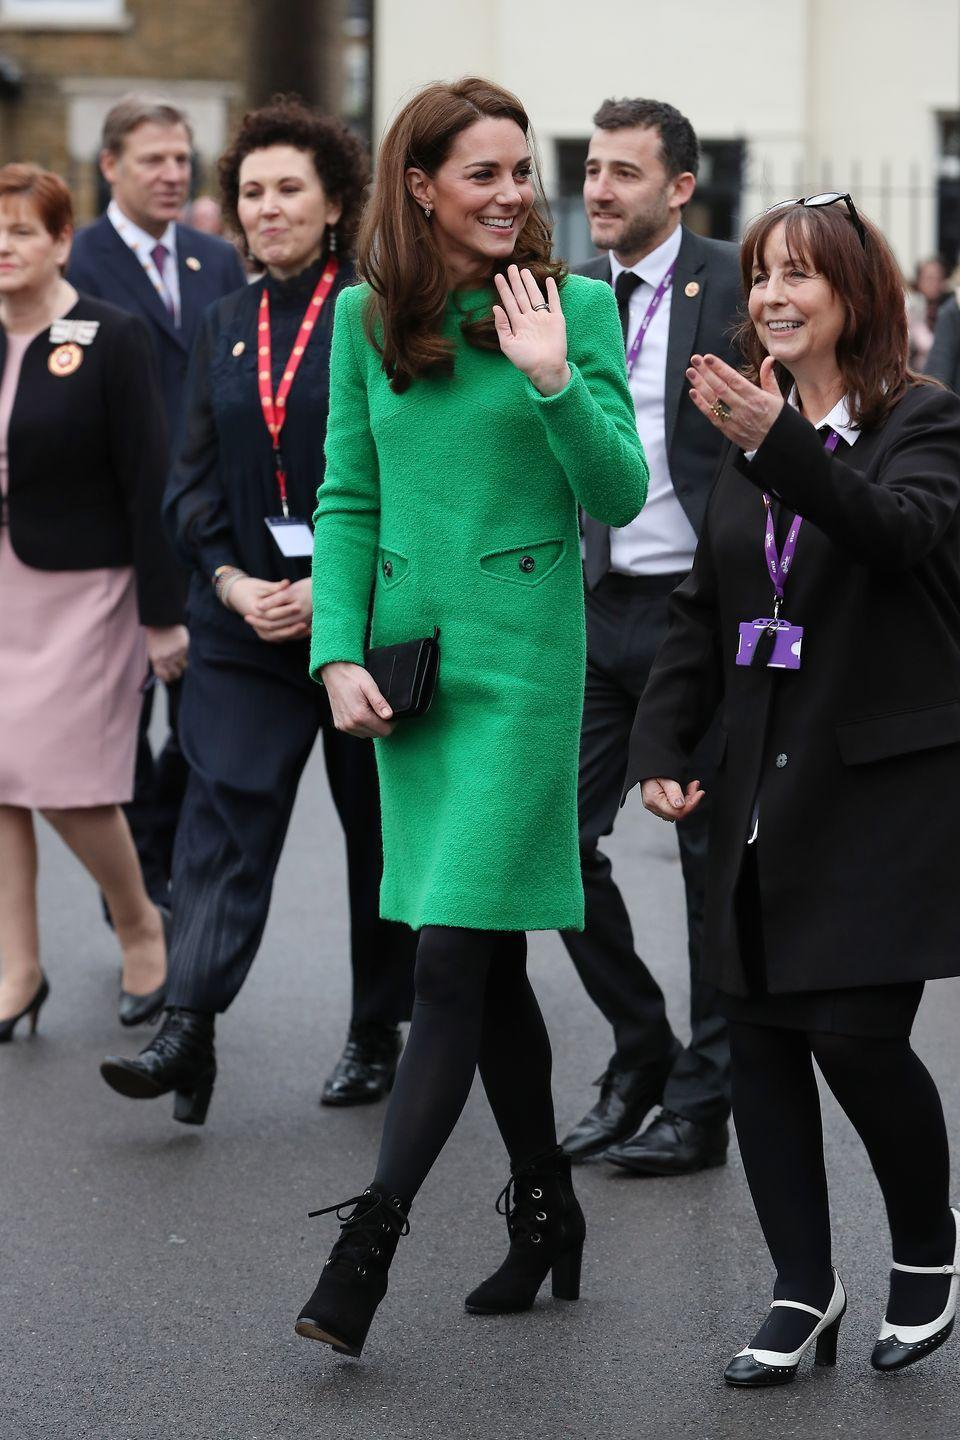 "<p>Kate Middleton stepped out in a retro-looking green smock dress by <a href=""http://www.eponinelondon.com/"" rel=""nofollow noopener"" target=""_blank"" data-ylk=""slk:Eponine"" class=""link rapid-noclick-resp"">Eponine</a> for a visit to Lavender Primary School in London. The Duchess paired the look with black tights, a black clutch, suede ankle boots by <a href=""https://www.lkbennett.com/product/SAMARISSASUEDEBlackBlack~Marissa-Black-Suede-Ankle-Boots-Black"" rel=""nofollow noopener"" target=""_blank"" data-ylk=""slk:L.K. Bennett"" class=""link rapid-noclick-resp"">L.K. Bennett</a>, and gold drop earrings by <a href=""https://www.kiki.co.uk/product/lauren-yellow-gold-pave-diamond-leaf-earrings-2/"" rel=""nofollow noopener"" target=""_blank"" data-ylk=""slk:Kiki McDonough"" class=""link rapid-noclick-resp"">Kiki McDonough</a>. </p><p><a class=""link rapid-noclick-resp"" href=""https://go.redirectingat.com?id=74968X1596630&url=https%3A%2F%2Fwww.lkbennett.com%2Fproduct%2FSAMARISSASUEDEBlackBlack%7EMarissa-Black-Suede-Ankle-Boots-Black&sref=https%3A%2F%2Fwww.townandcountrymag.com%2Fstyle%2Ffashion-trends%2Fnews%2Fg1633%2Fkate-middleton-fashion%2F"" rel=""nofollow noopener"" target=""_blank"" data-ylk=""slk:SHOP NOW""><strong>SHOP NOW</strong></a><em> Marissa Black Suede Ankle Boots, L.K. Bennett, $257</em><em><br></em></p><p><a class=""link rapid-noclick-resp"" href=""https://go.redirectingat.com?id=74968X1596630&url=https%3A%2F%2Fwww.kiki.co.uk%2Fproduct%2Flauren-yellow-gold-pave-diamond-leaf-earrings-2%2F&sref=https%3A%2F%2Fwww.townandcountrymag.com%2Fstyle%2Ffashion-trends%2Fnews%2Fg1633%2Fkate-middleton-fashion%2F"" rel=""nofollow noopener"" target=""_blank"" data-ylk=""slk:SHOP NOW""><strong>SHOP NOW </strong></a> <em>Lauren Pave Diamond Leaf Earrings in Yellow Gold, Kiki McDonough, $2,372</em></p>"